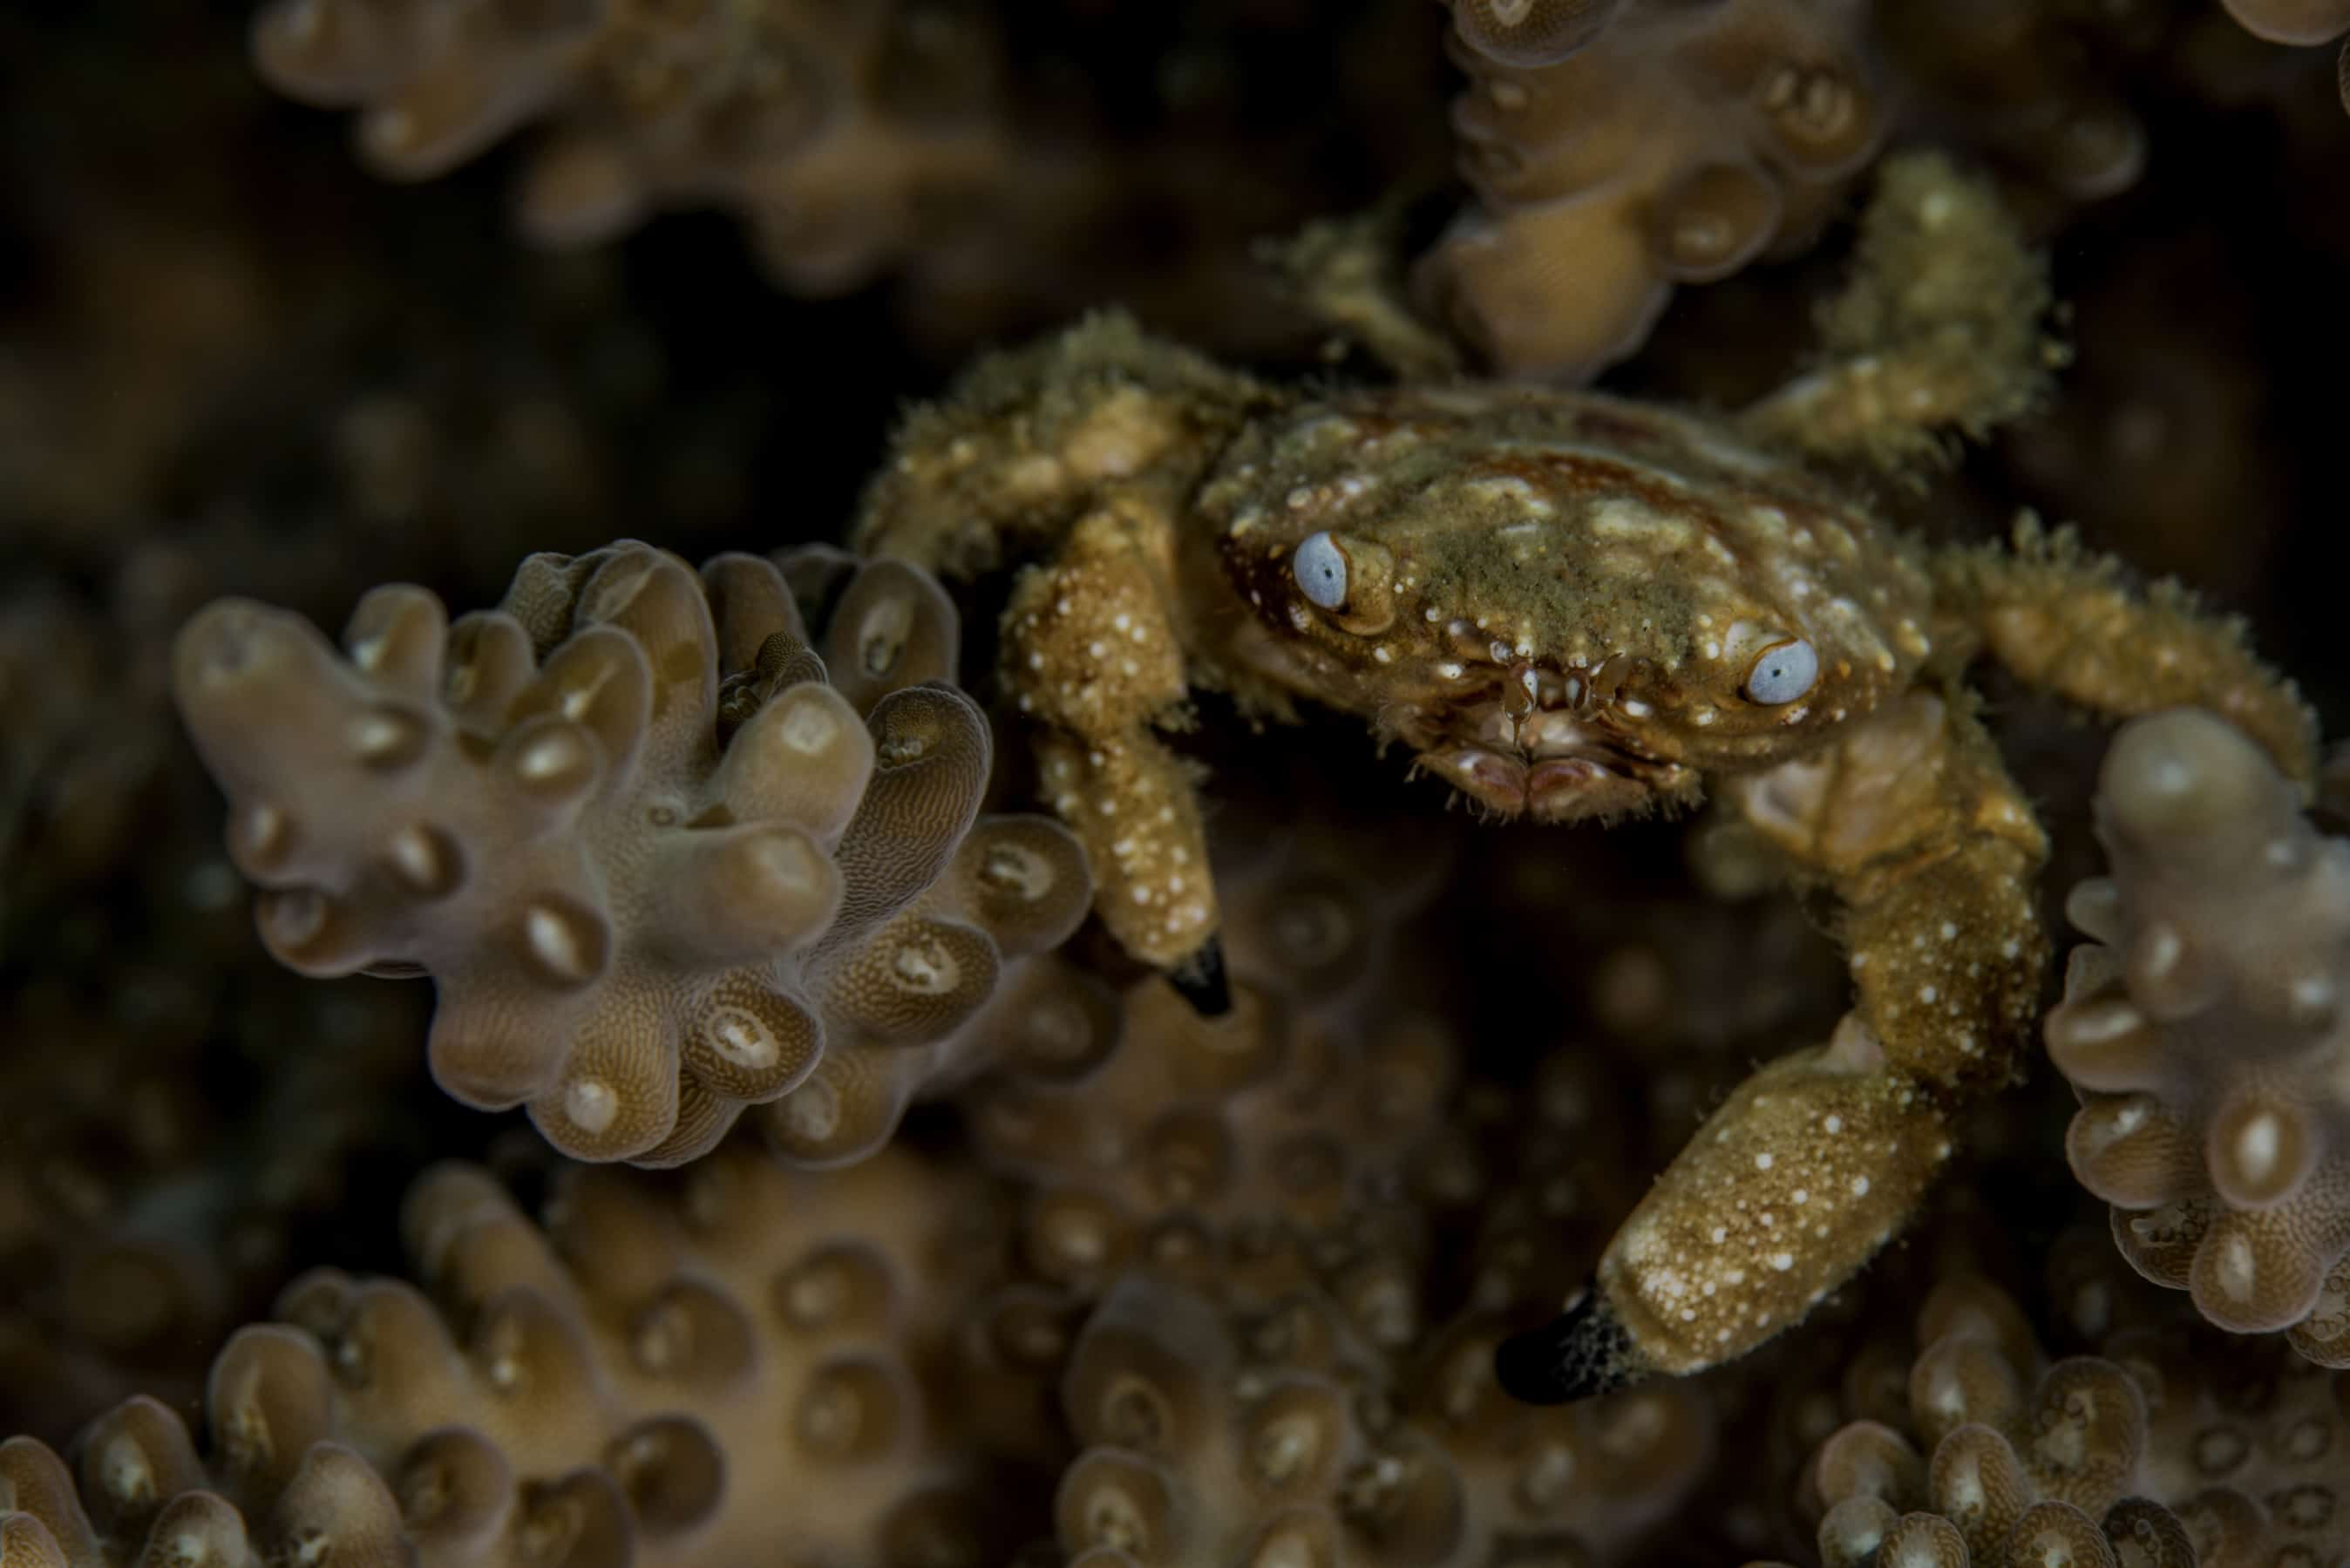 Blue-eyed-coral-crab